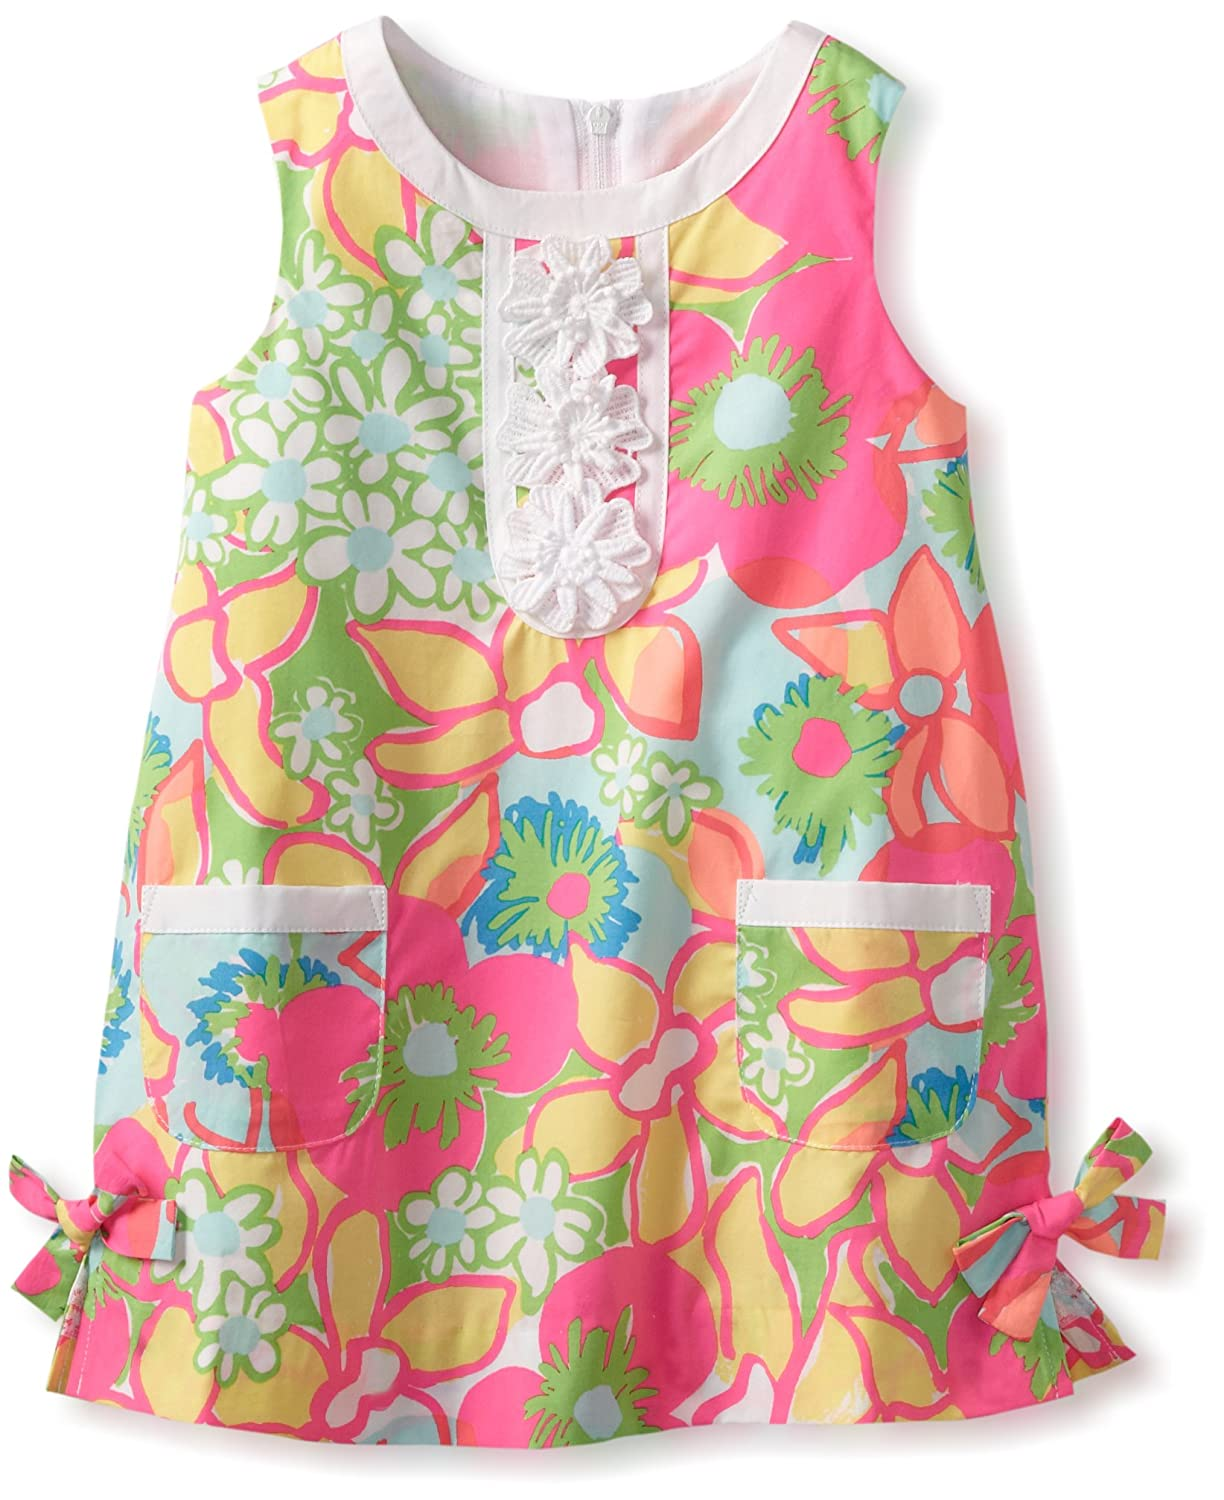 Qualified Girl's Lilly Pulitzer 3 Patchwork Pink Green Sleeveless Shift Clothing, Shoes & Accessories